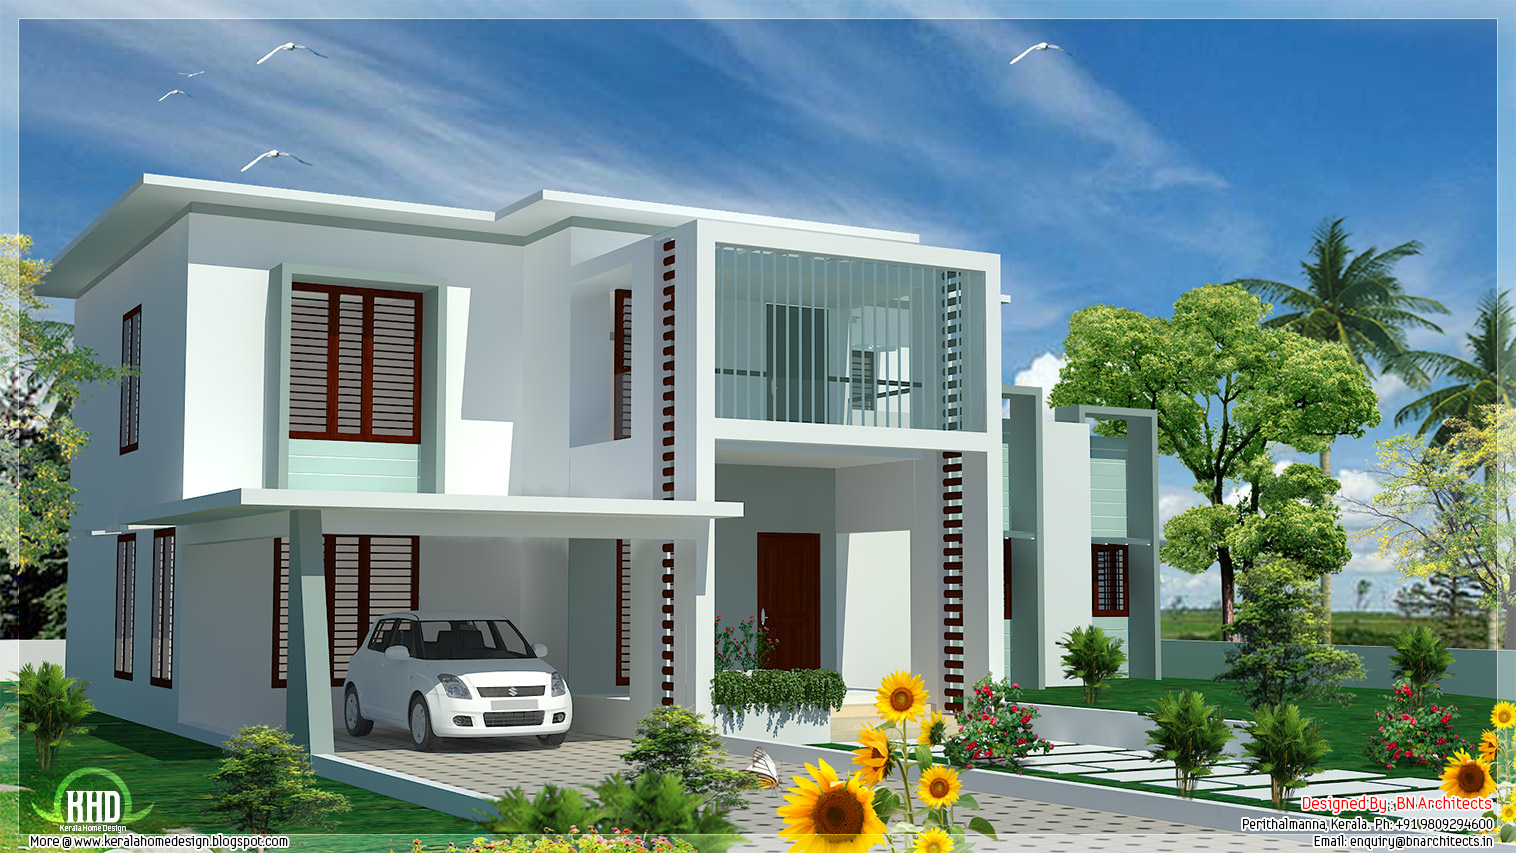 4 bedroom modern flat roof house kerala home design and floor plans - Modern house designs ...